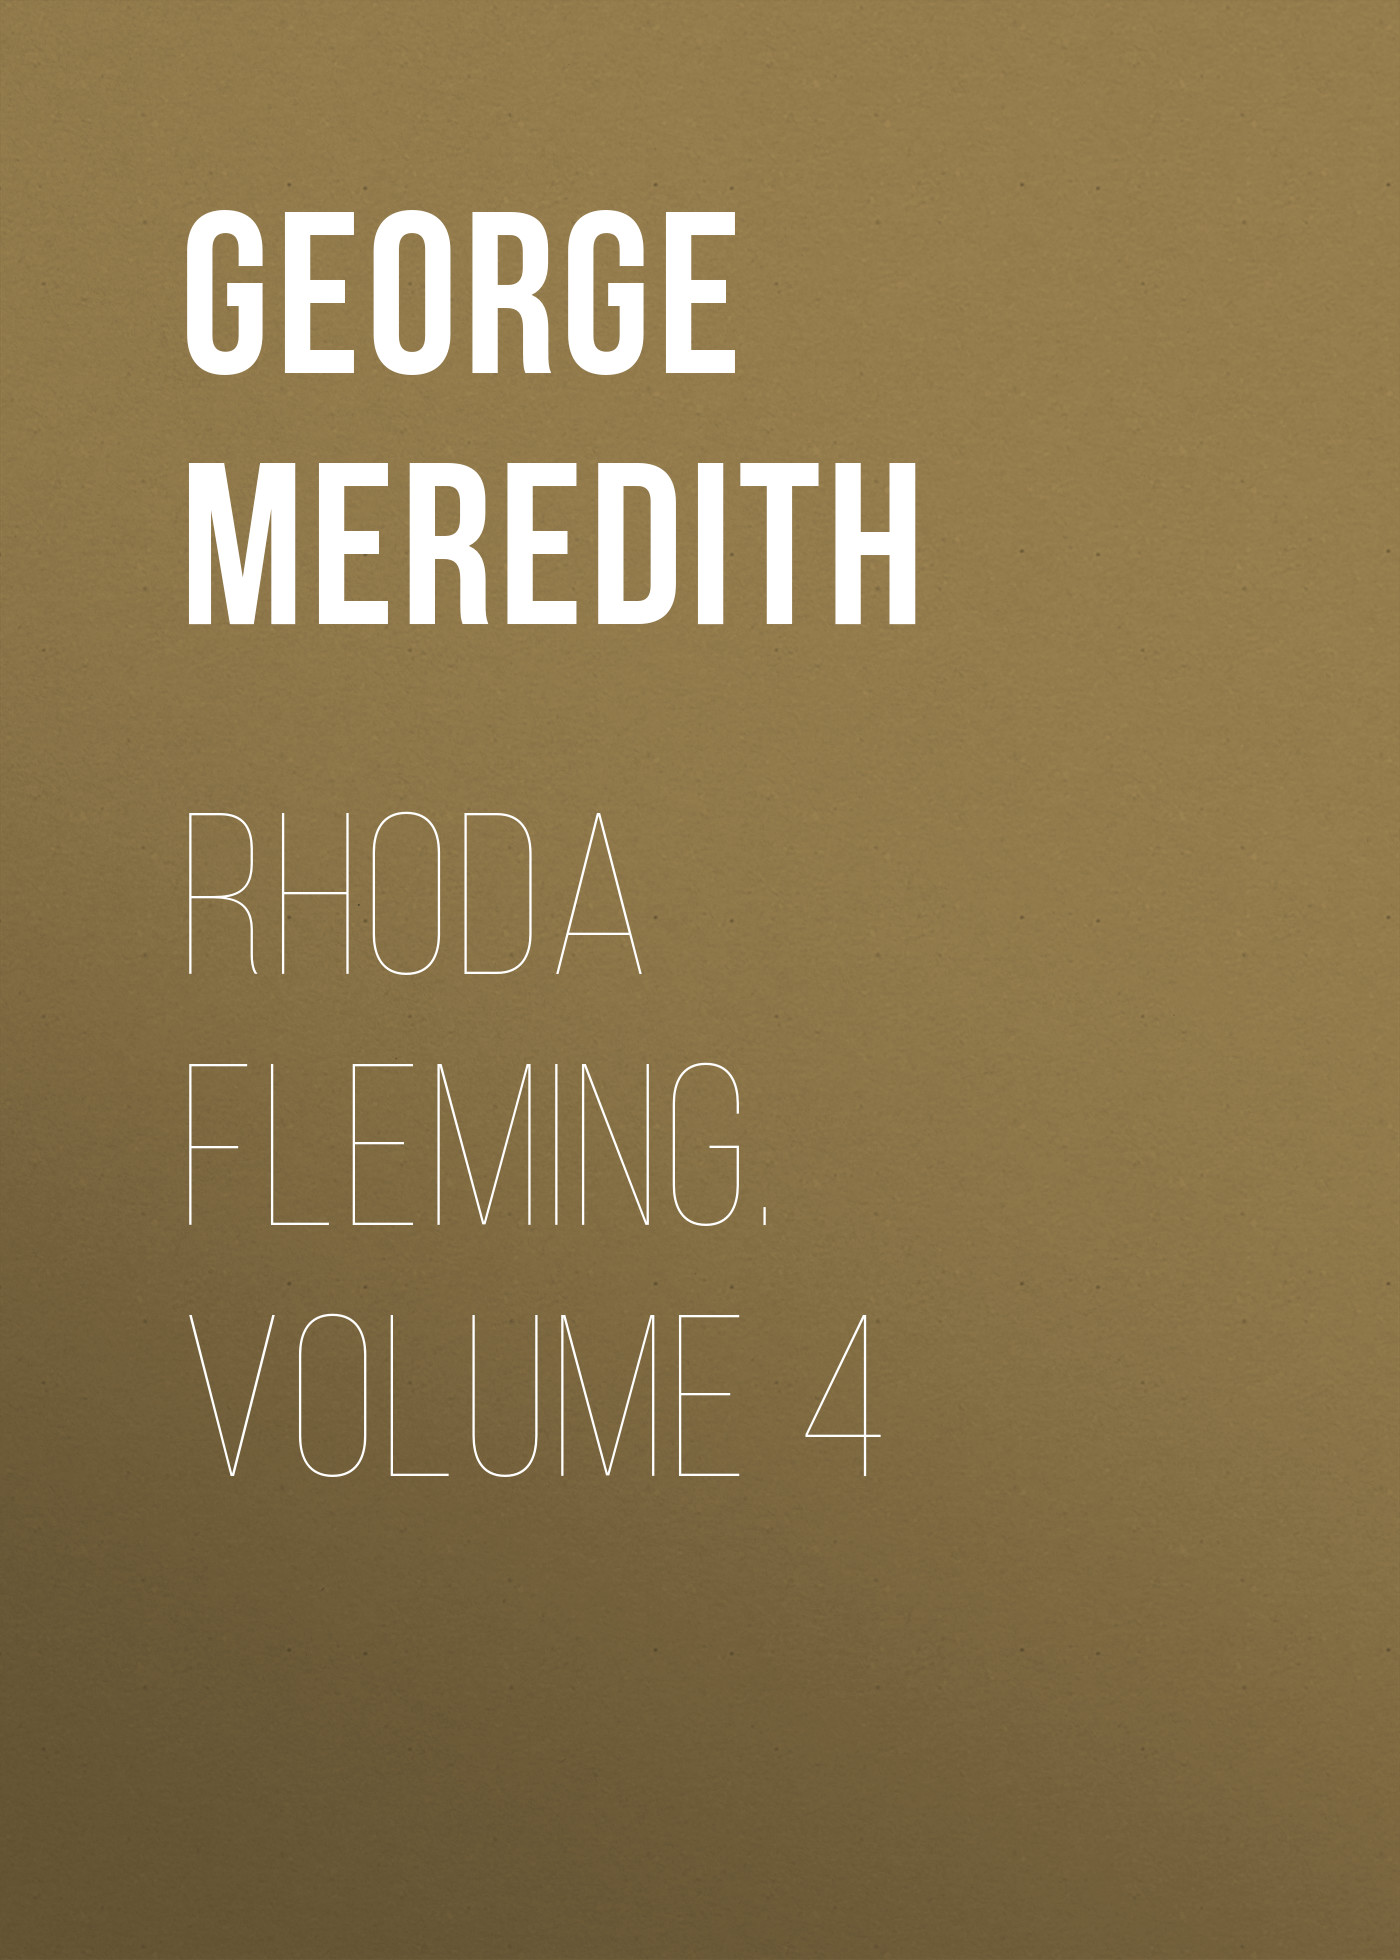 Rhoda Fleming. Volume 4